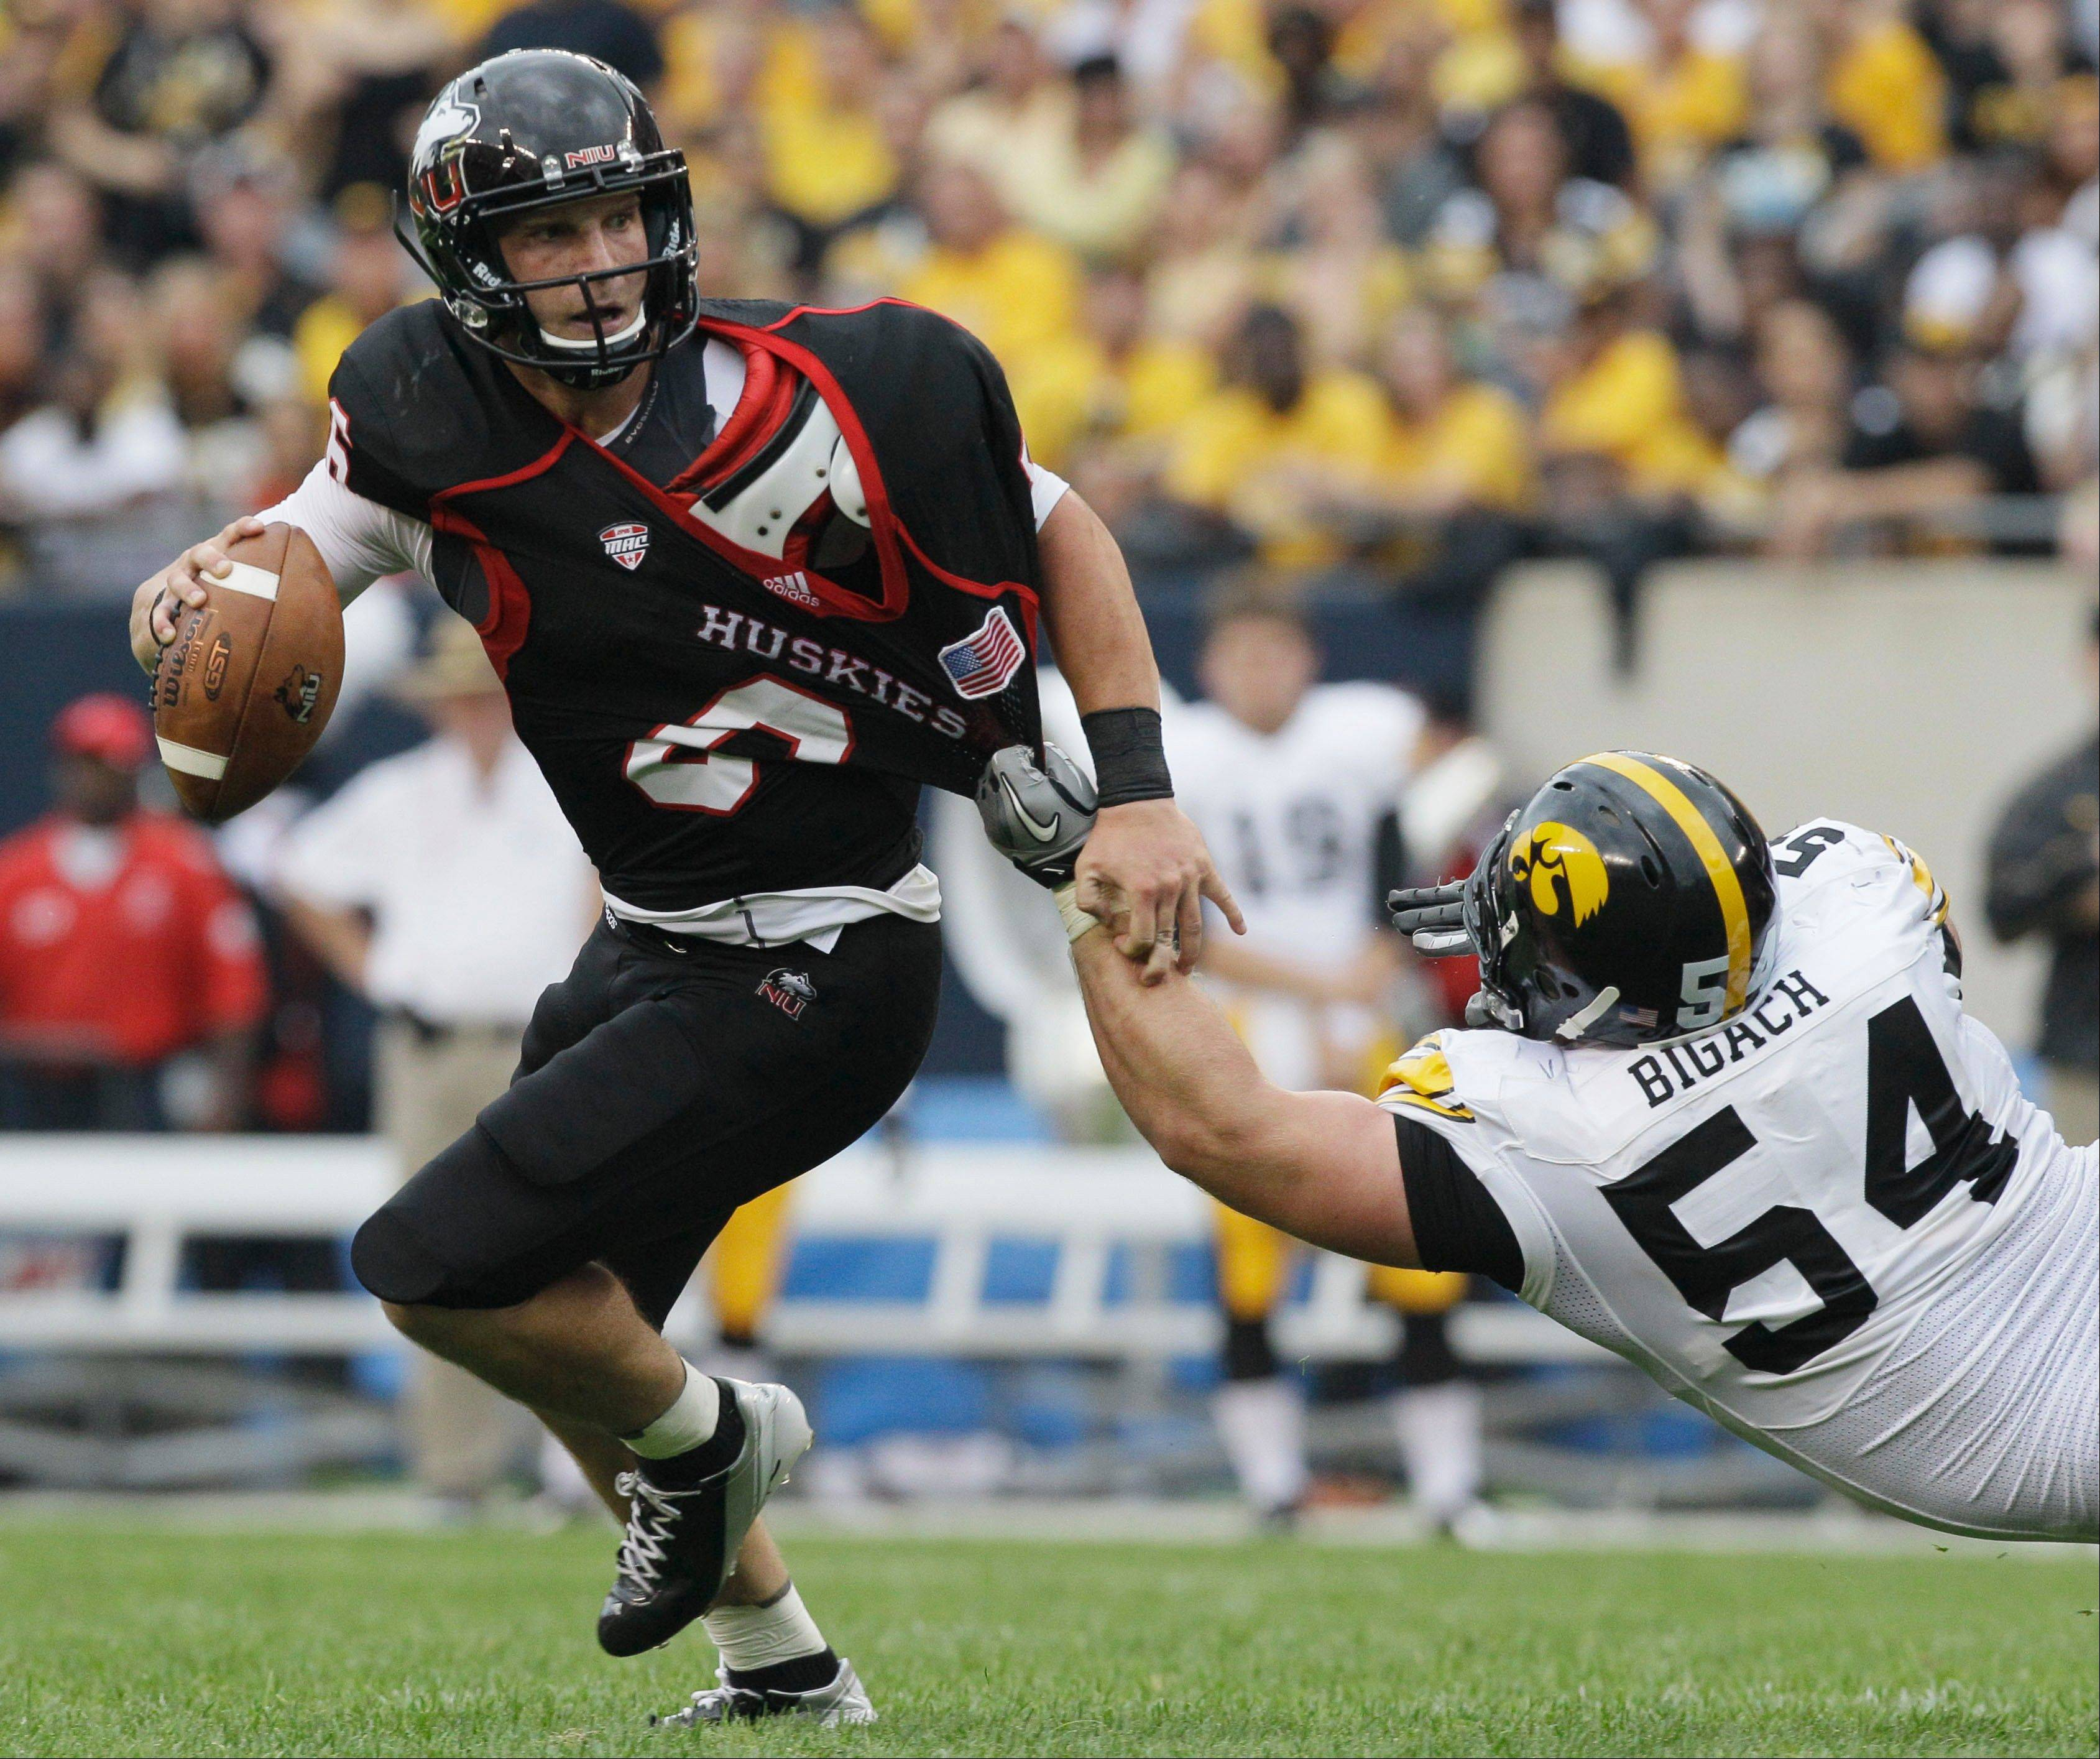 Northern Illinois quarterback Jordan Lynch, who nearly upset the Iowa Hawkeyes at Soldier Field to open the season, has run for 15 touchdowns and thrown for 17 TDs this season.